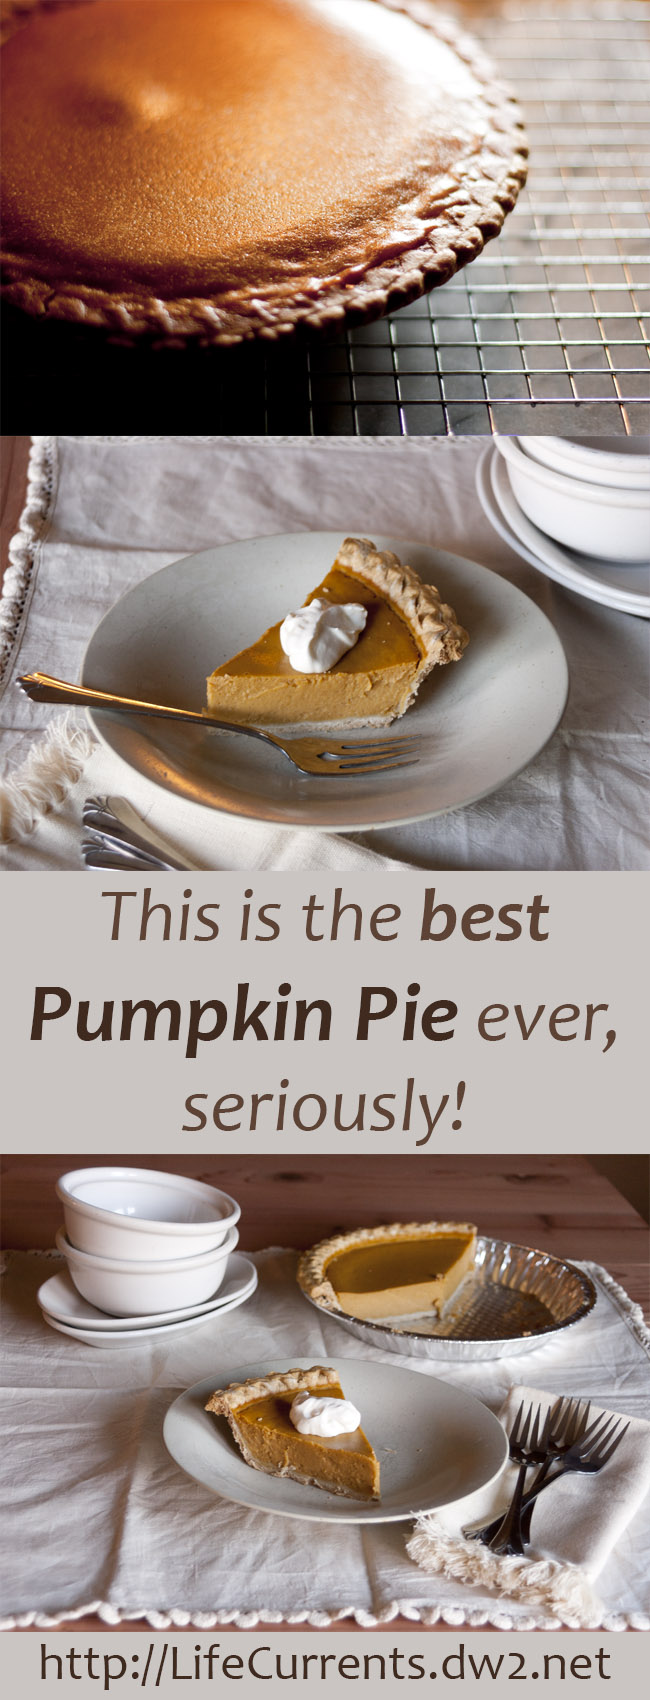 This is the best Pumpkin Pie ever, seriously! Make your own this Thanksgiving and Christmas, you'll be happy you did!